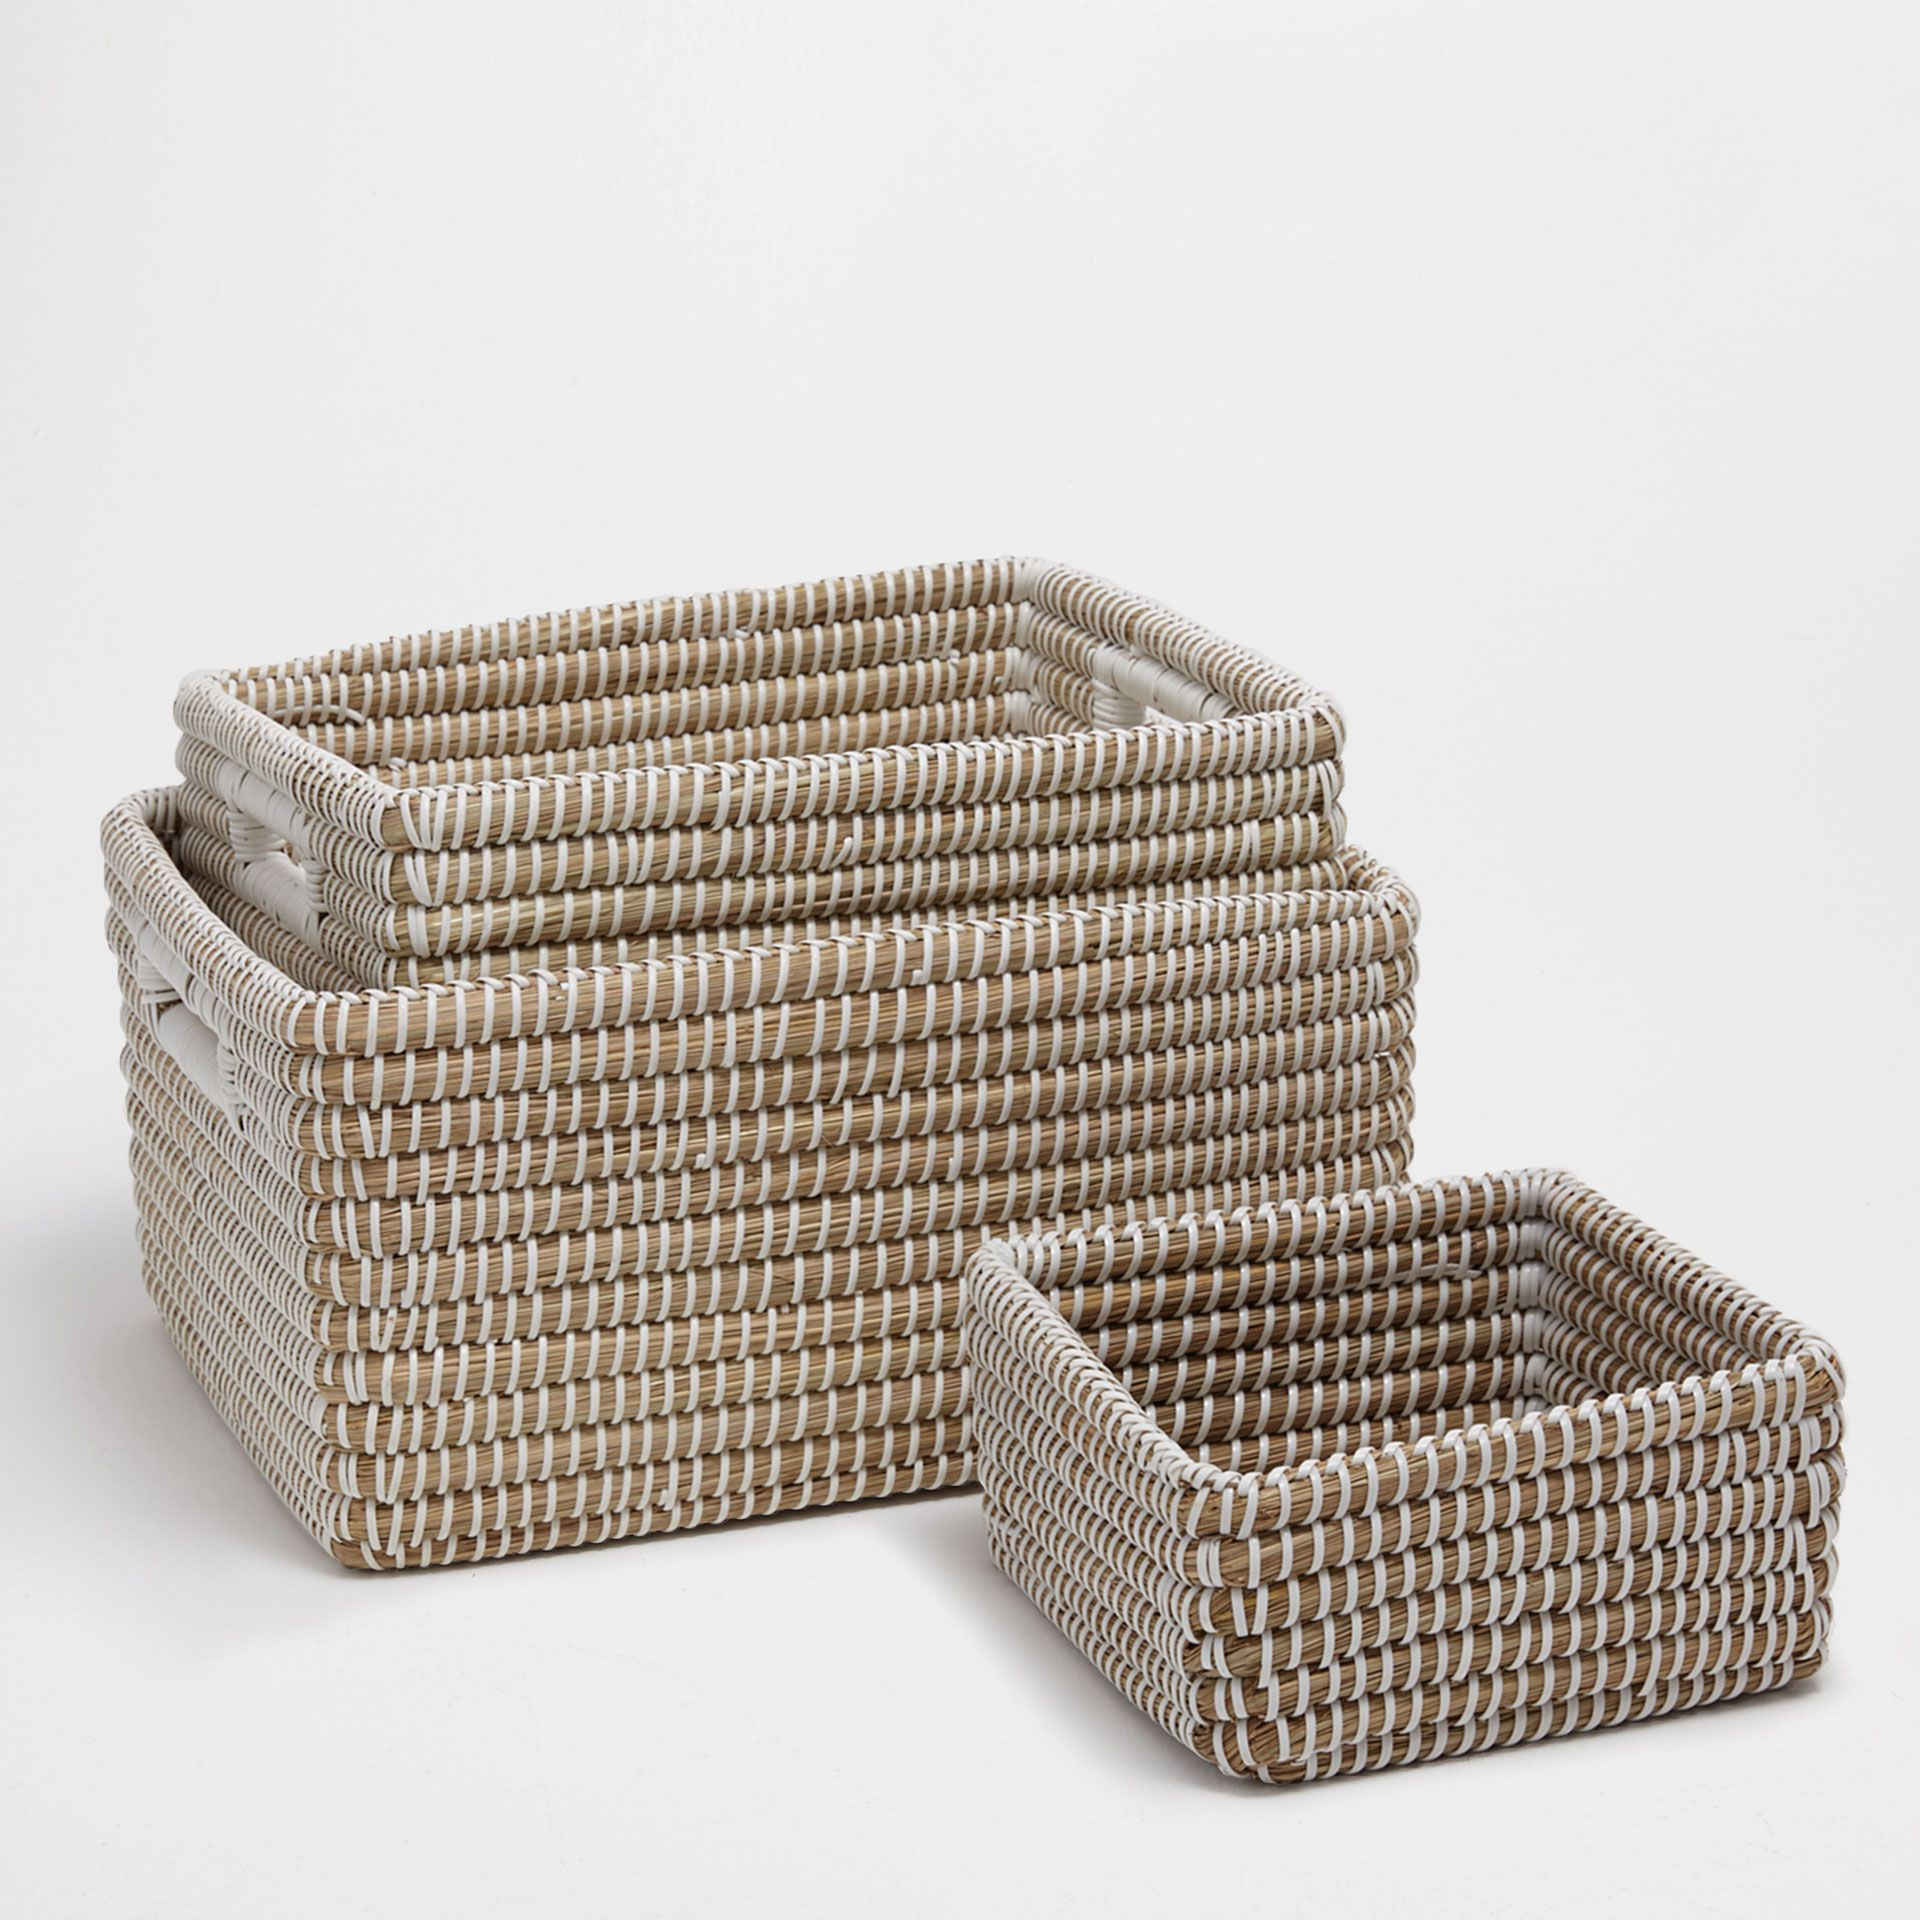 Image 1 Of The Product Natural Fibre Basket 15 X 12 X 8 Korg